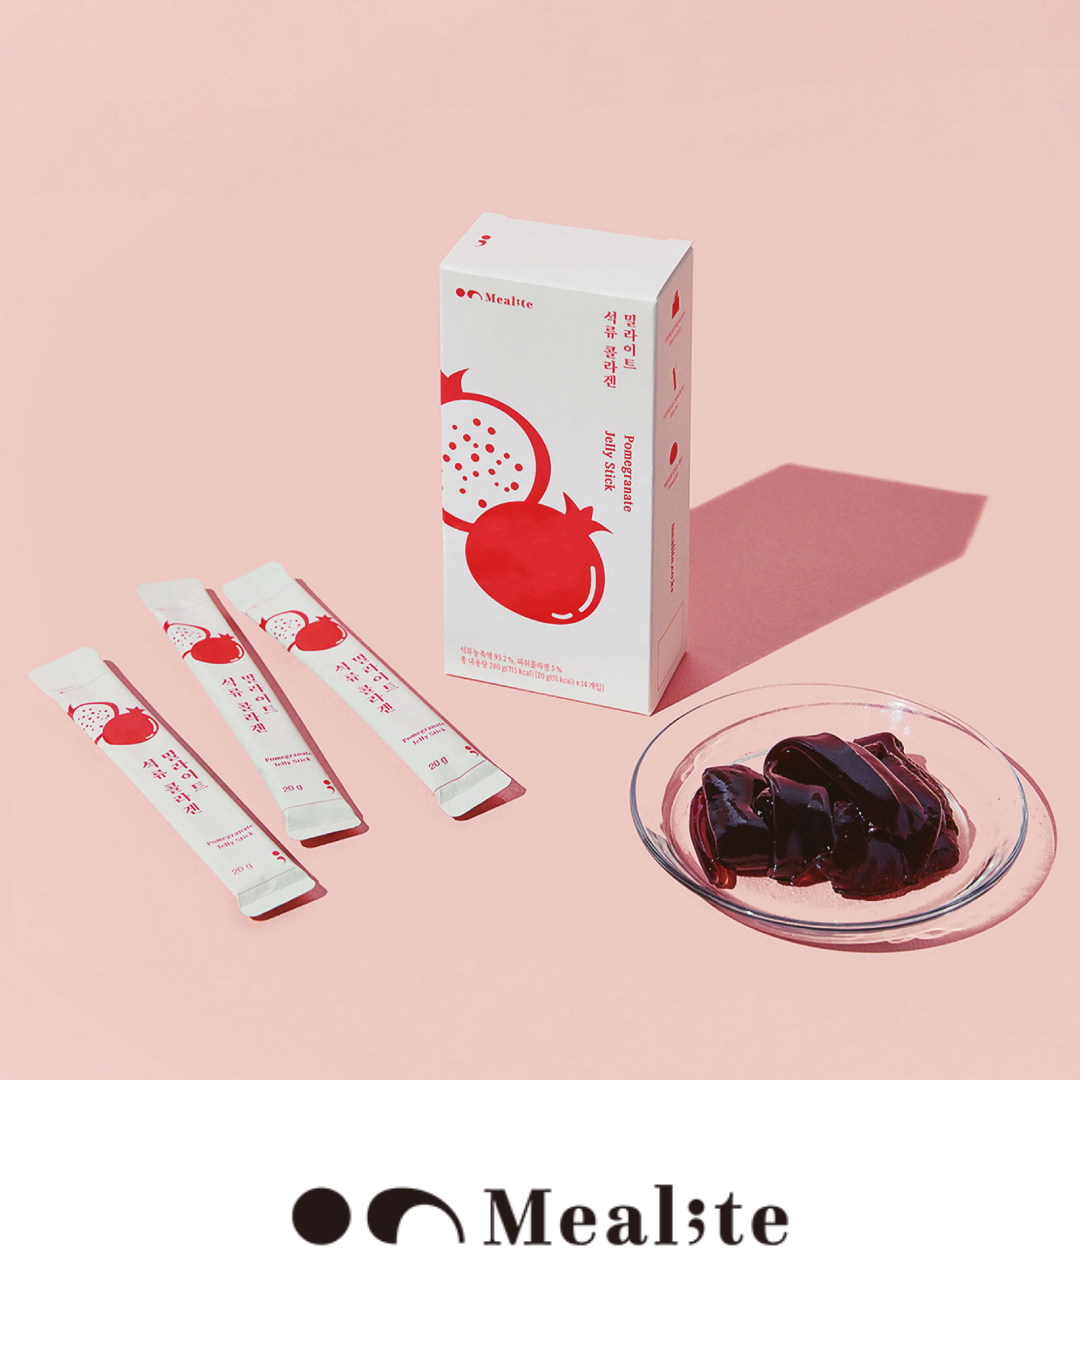 Pomegranate Collagen Jelly Sticks from Mealite